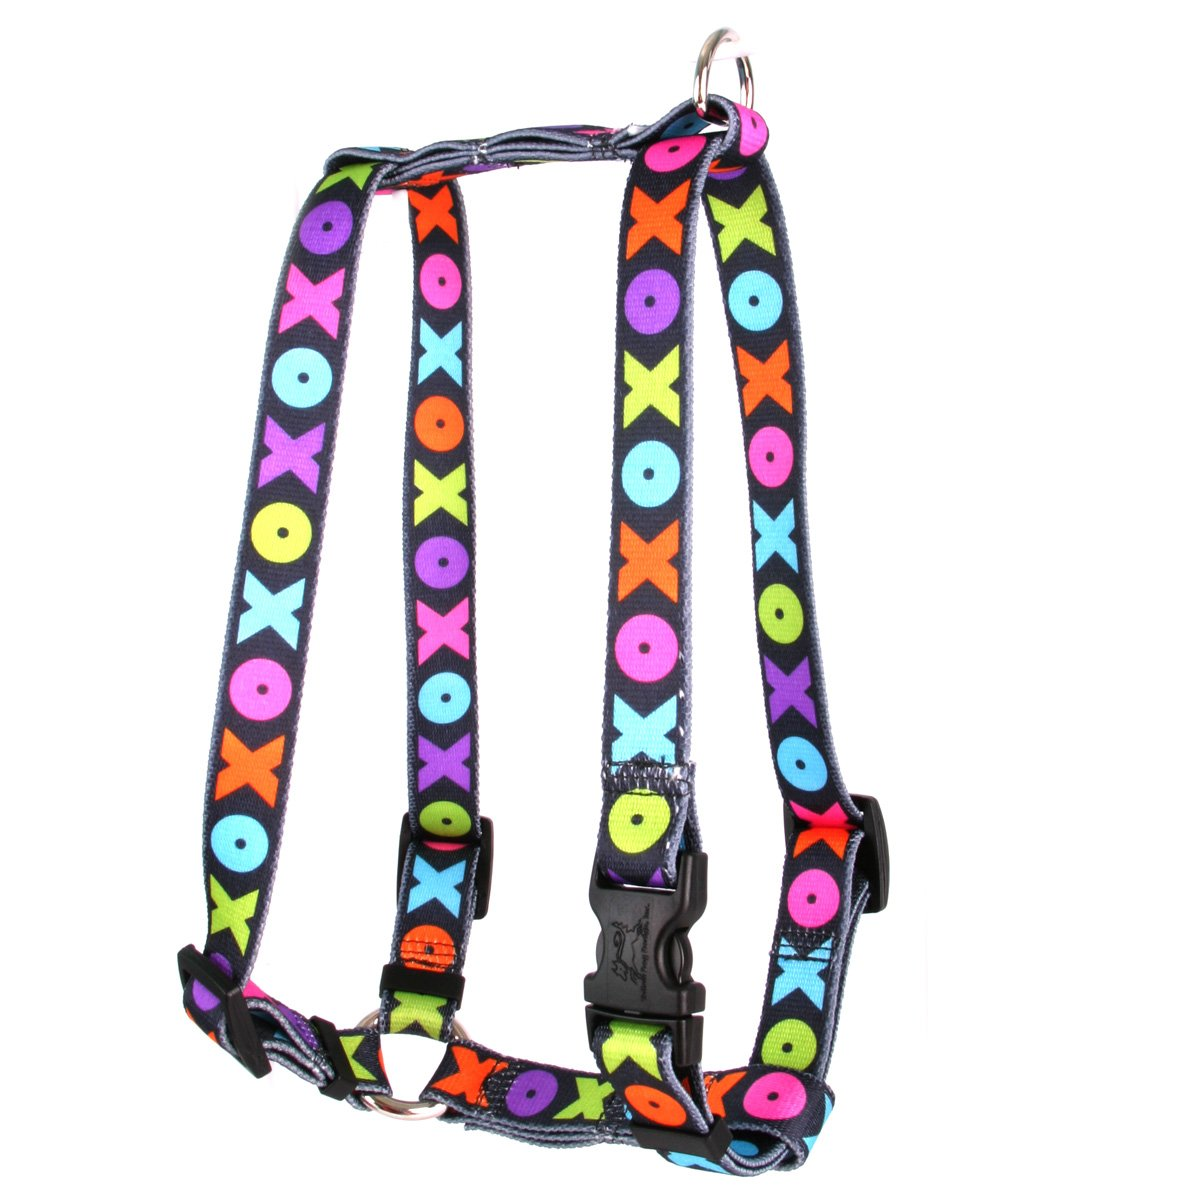 Yellow Dog Design Hugs and Kisses Roman Style H Dog Harness, X-Large/1'' Wide by Yellow Dog Design